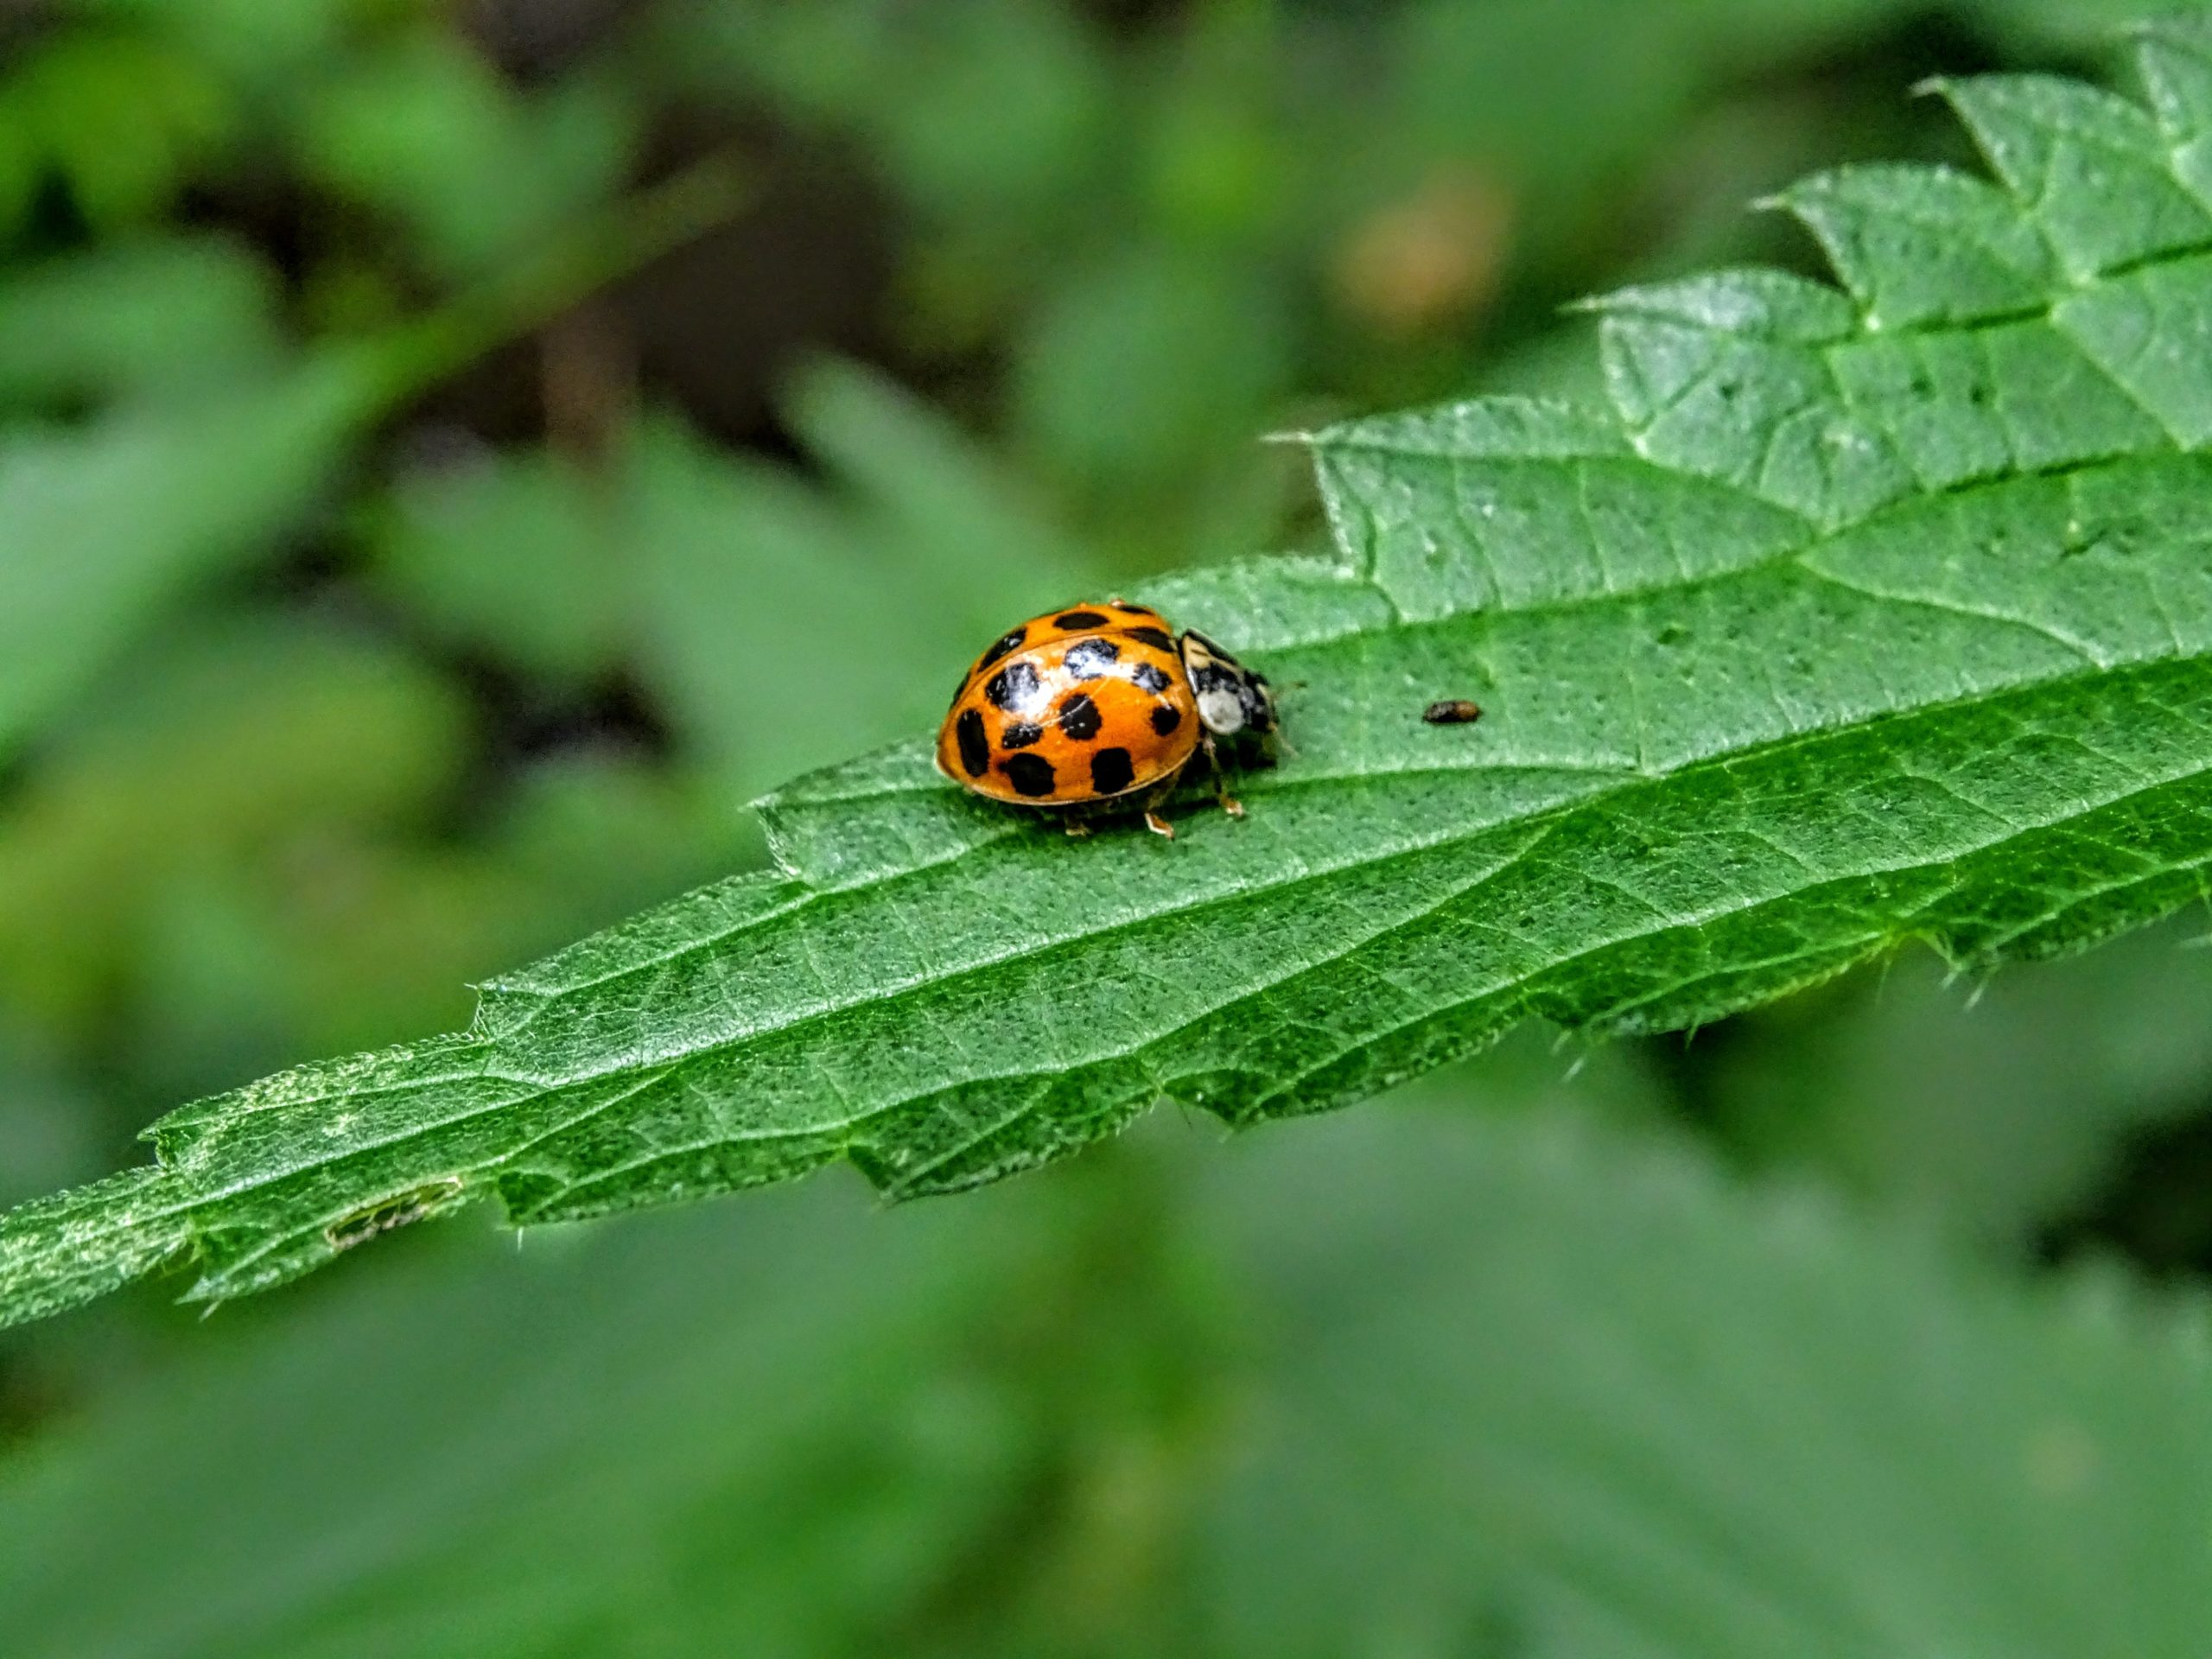 How to Prevent Ladybug Swarms